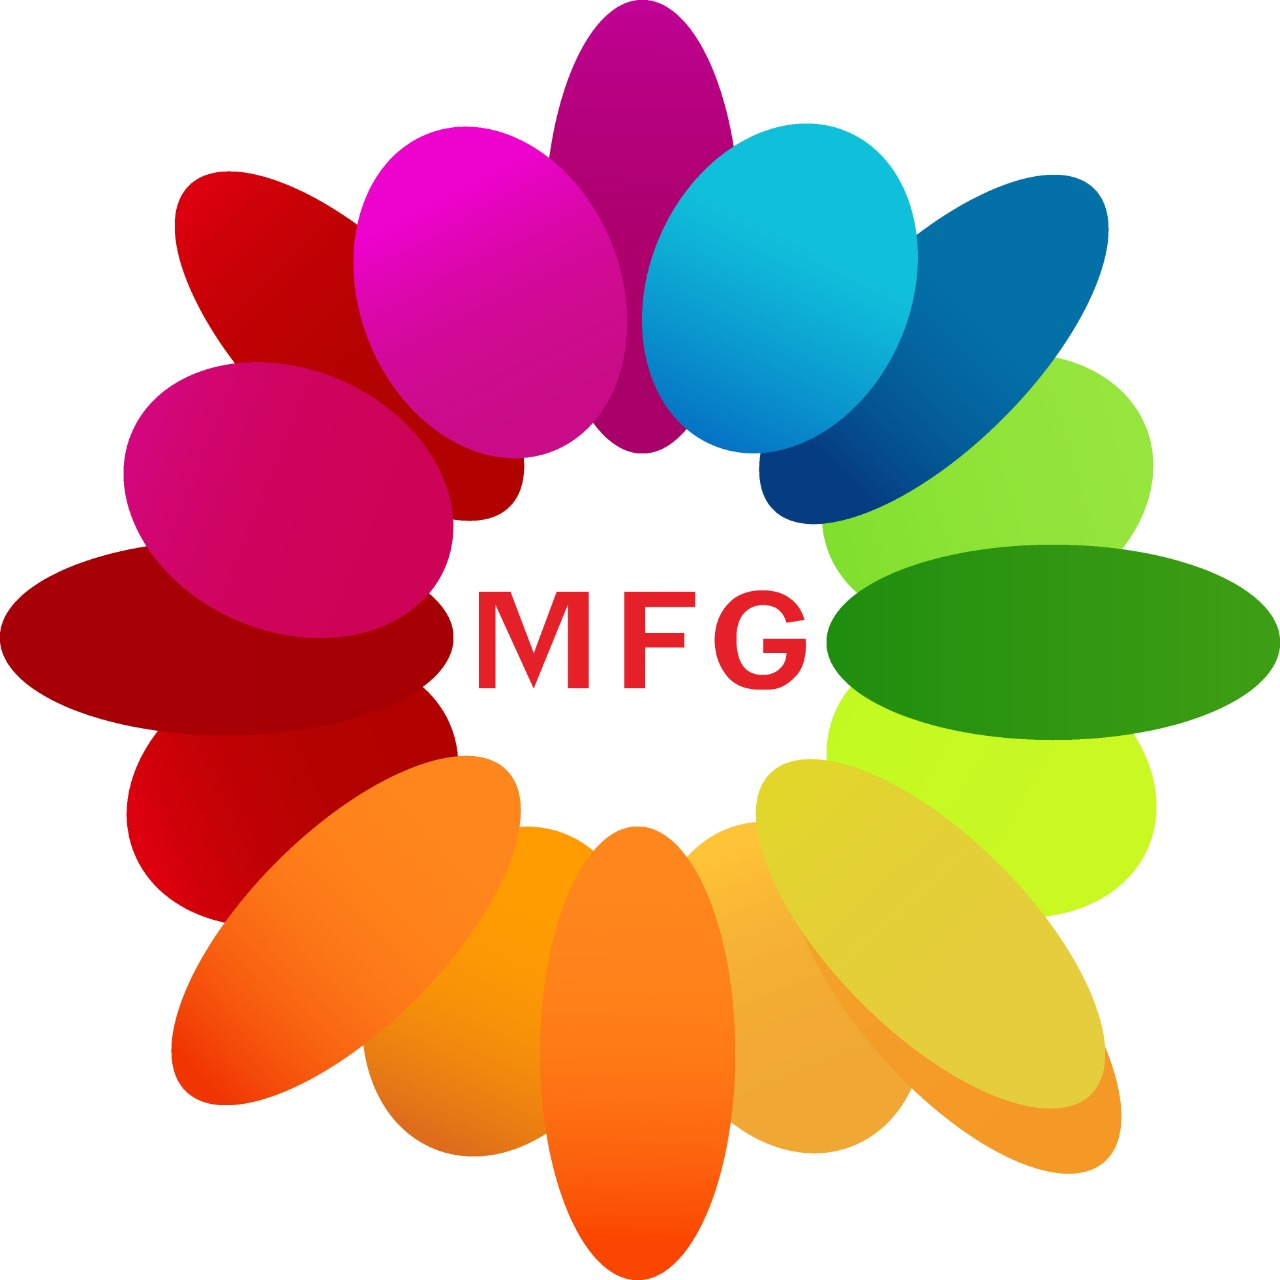 Bunch of 5 white lilies